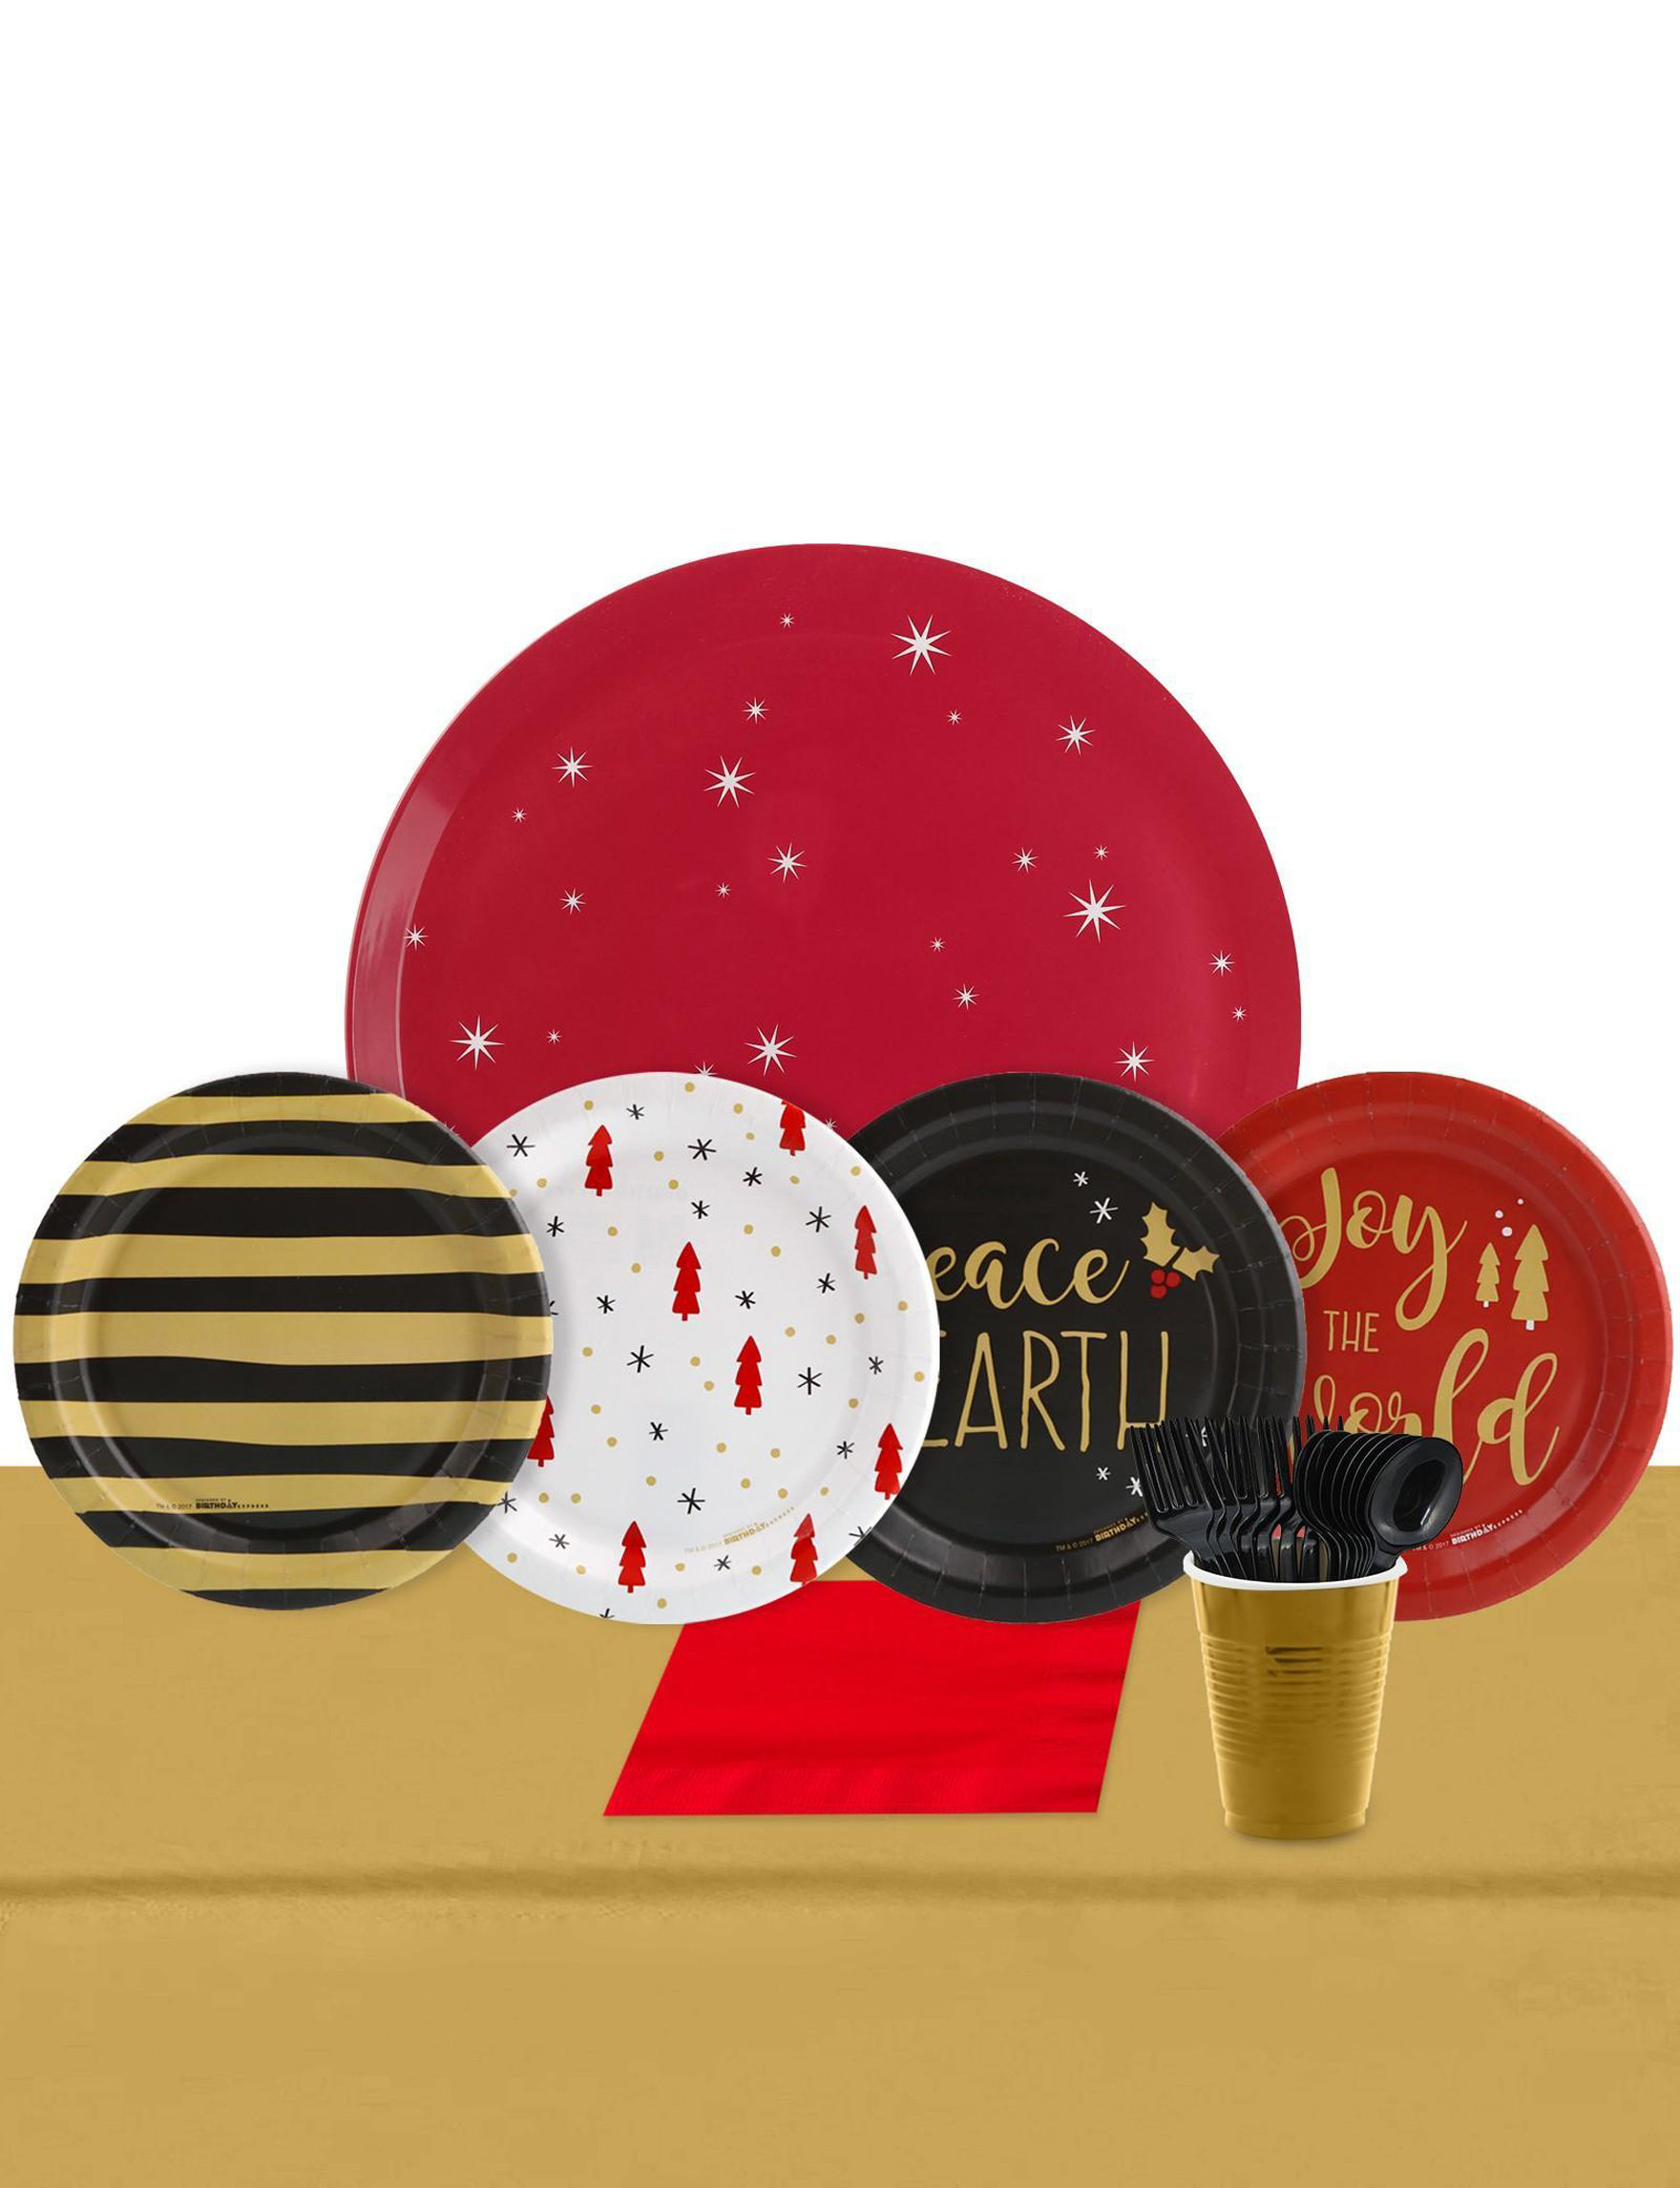 BuySeasons Red / Gold Decorative Objects Holiday Dining & Entertaining Serving Platters & Trays Holiday Decor Party Decor Party Tableware Serveware